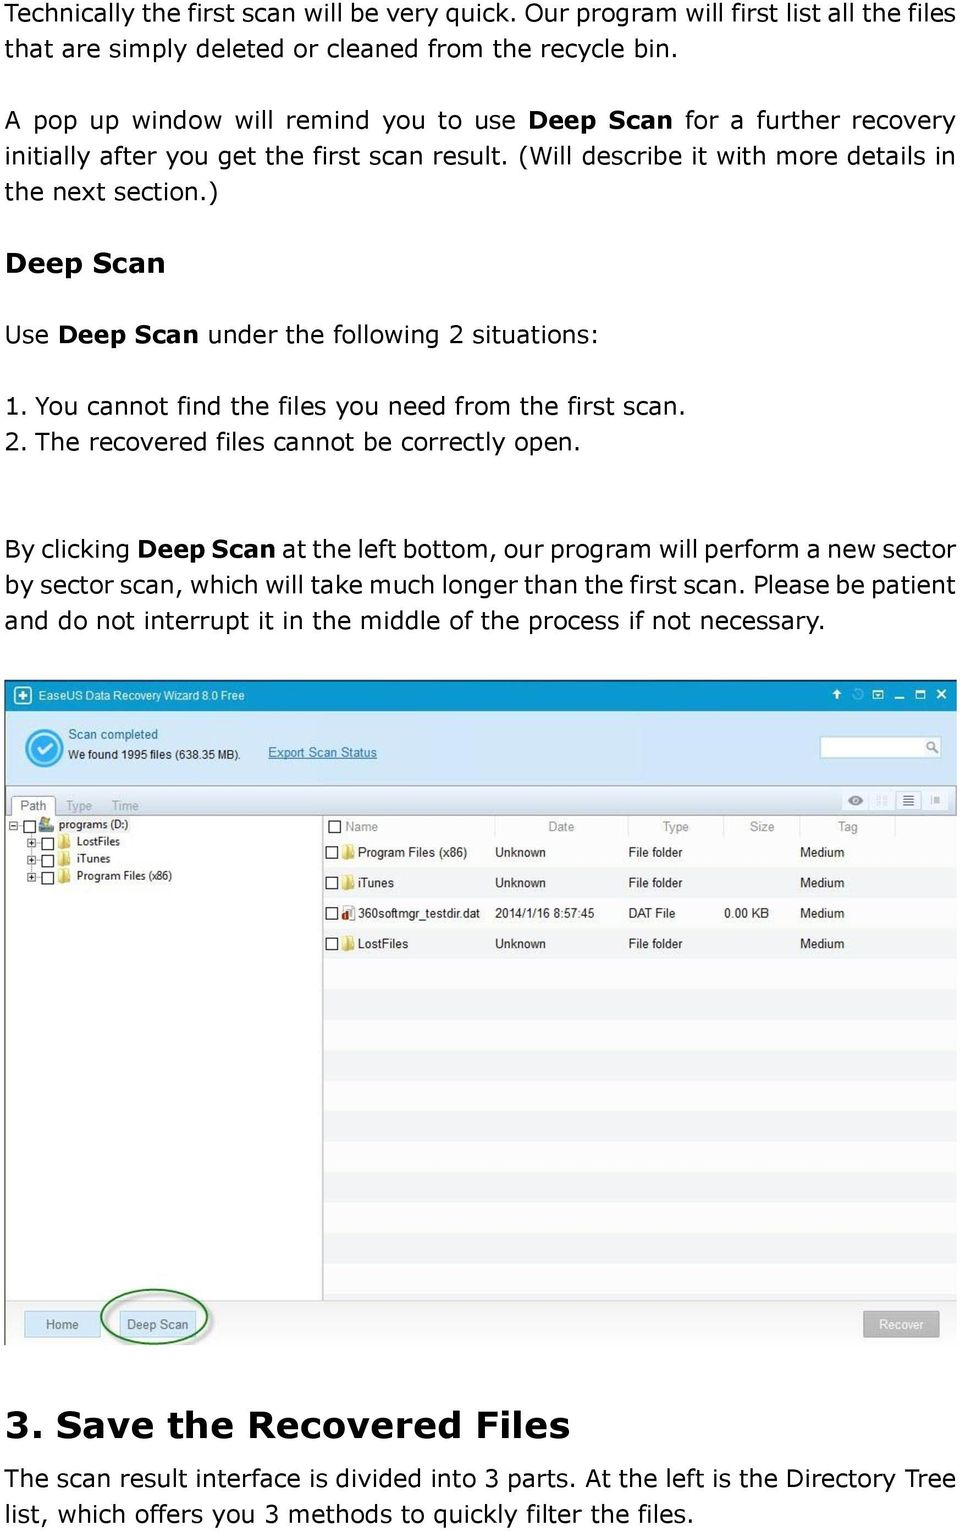 ) Deep Scan Use Deep Scan under the following 2 situations: 1. You cannot find the files you need from the first scan. 2. The recovered files cannot be correctly open.